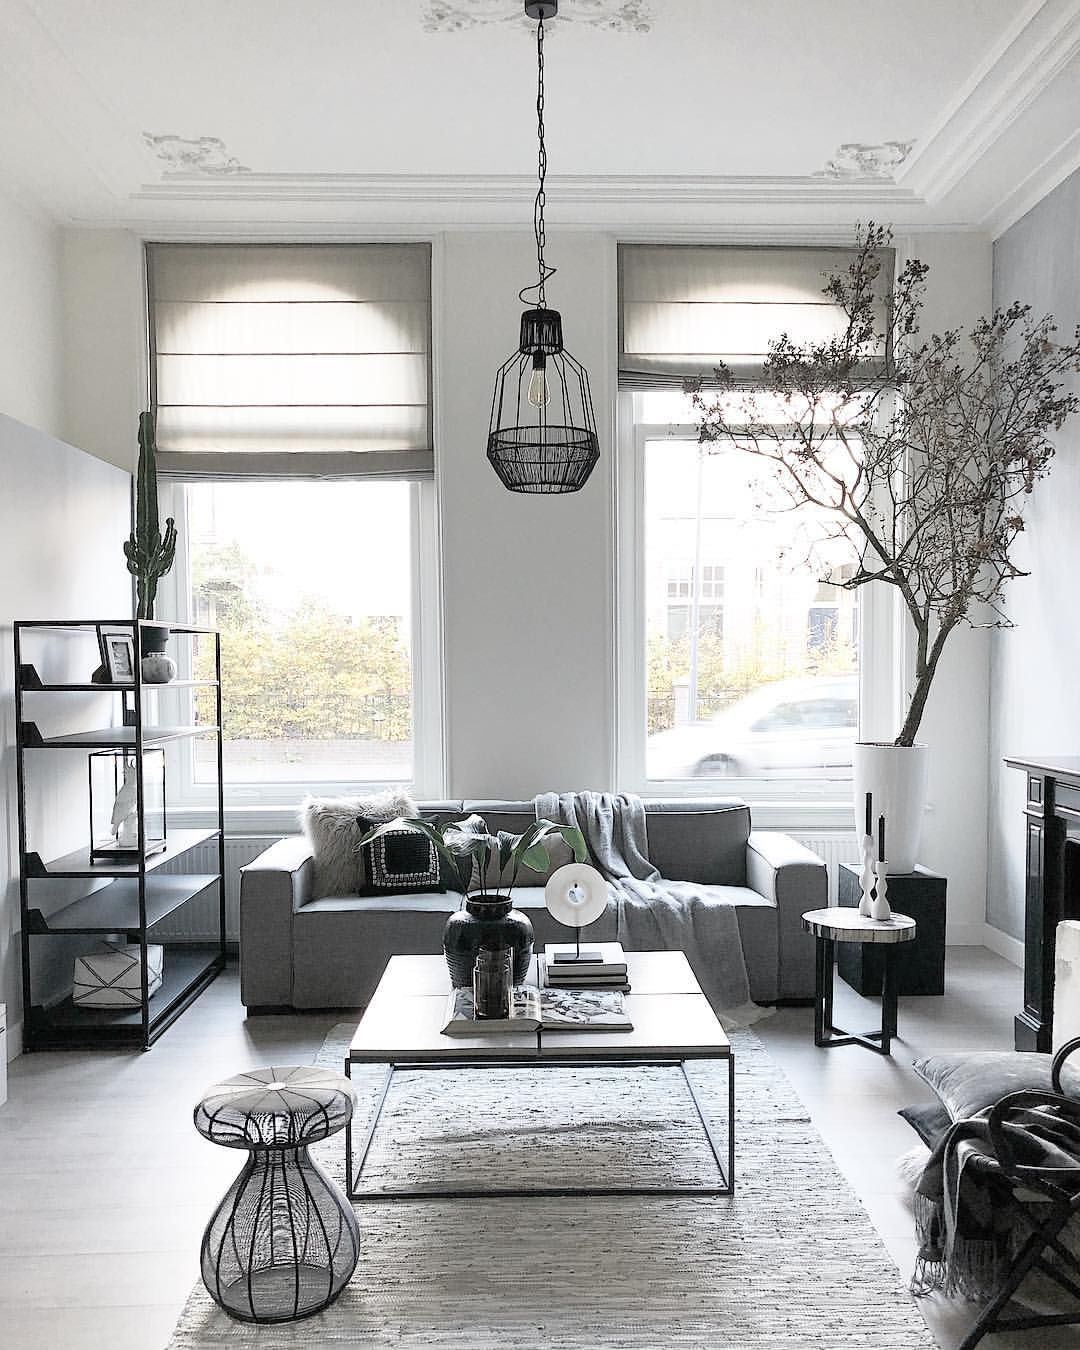 Pin by magdalena duma on s p a c e s pinterest interiors